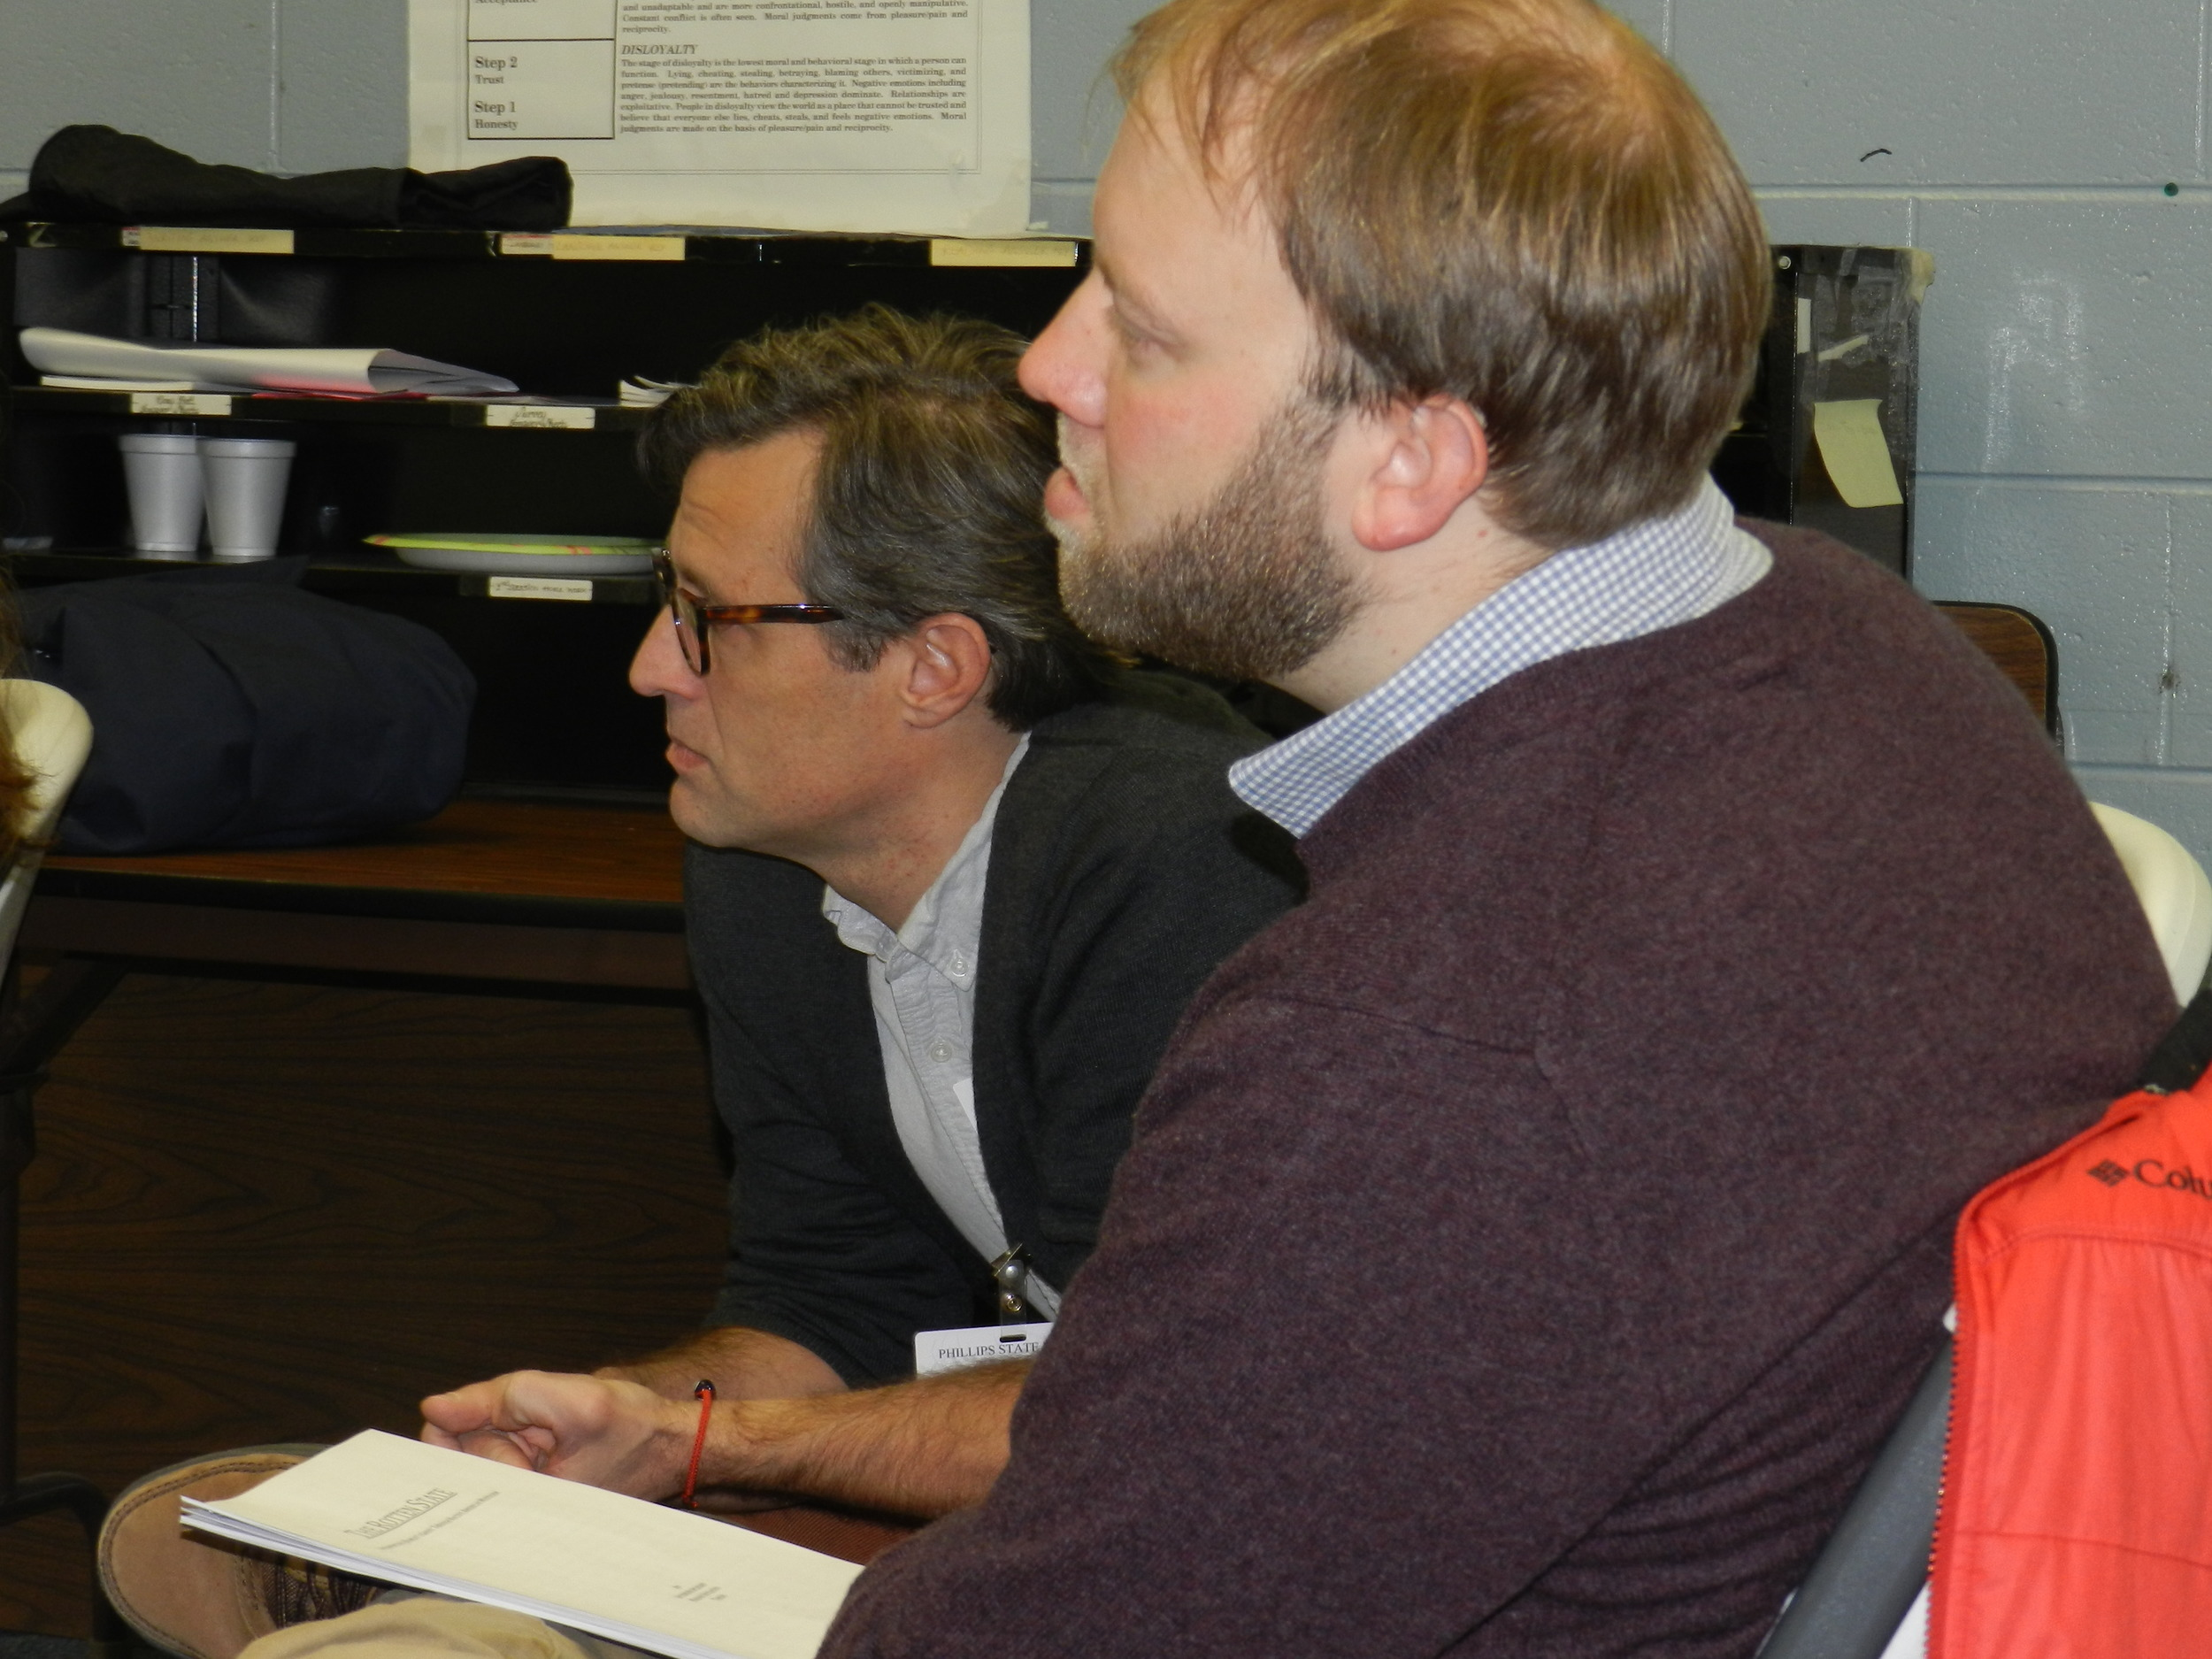 Dr. Stivers and Dr. Rettberg listen to the conference presentations